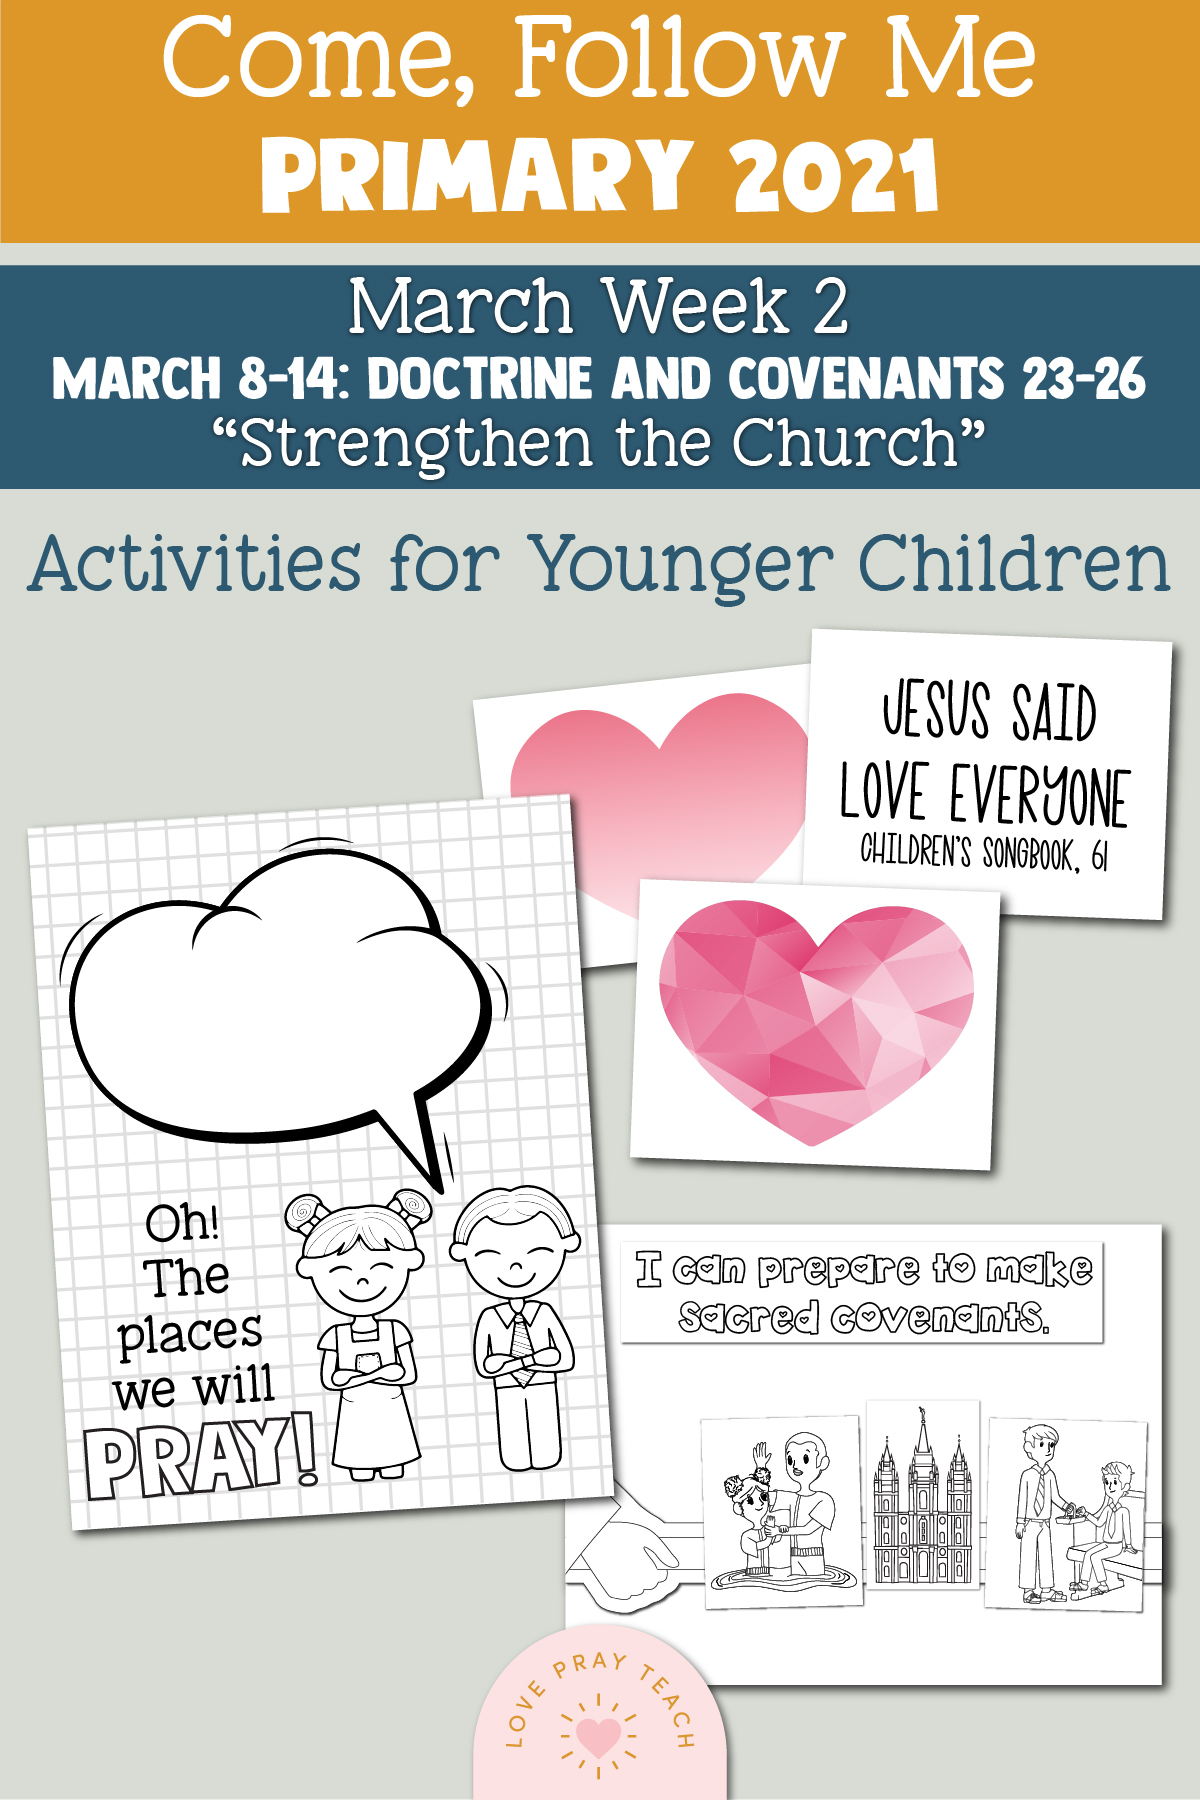 """Come, Follow Me for Primary 2021 March Week 2 Doctrine and Covenants 23-26 """"Strengthen the Church"""" Printable Lesson Materials"""